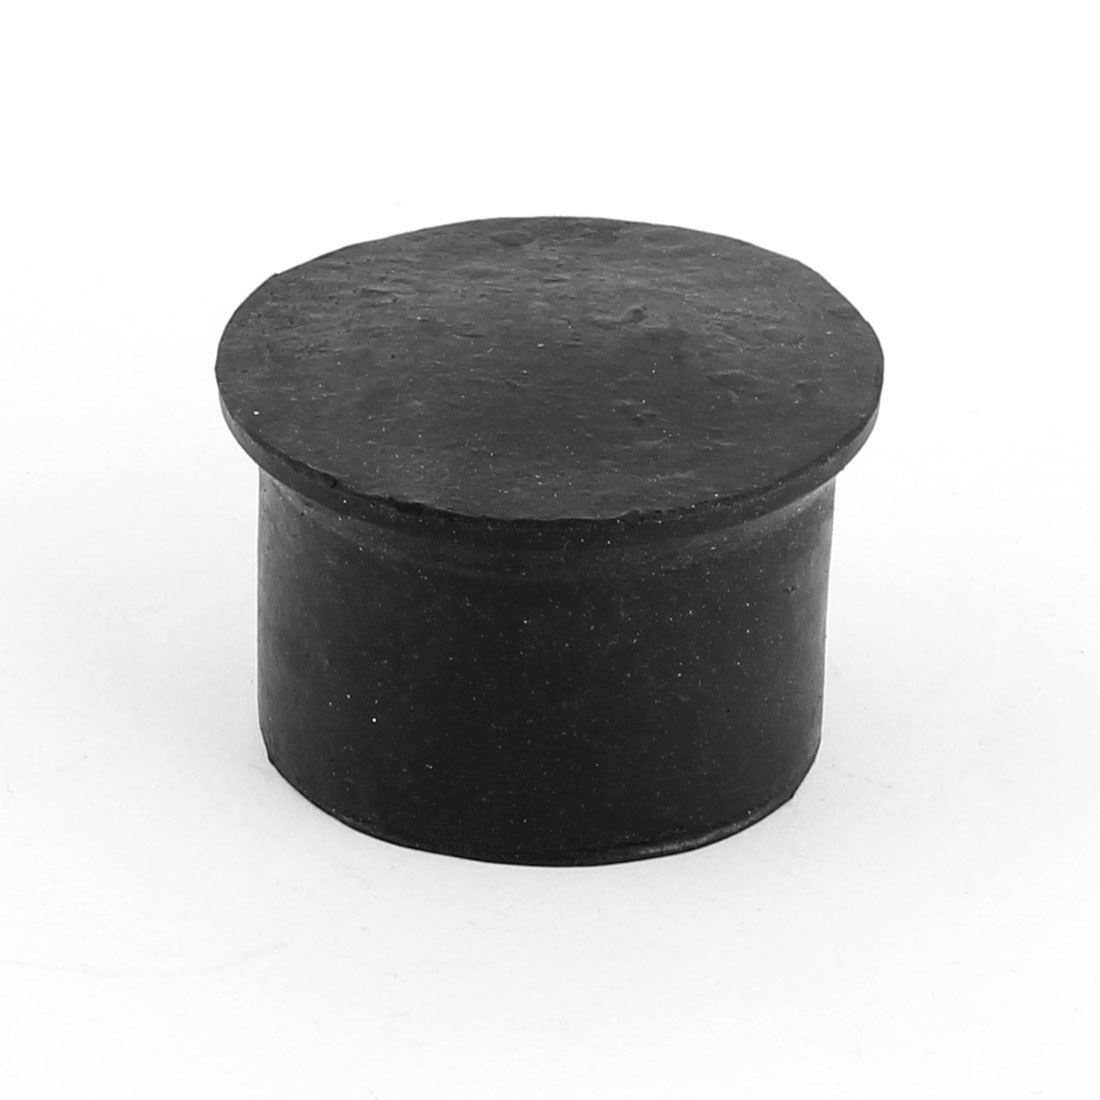 Rubber Round Furniture Chair Table Bottom Protector Feet Leg End Tip Black 50mm Inner Dia